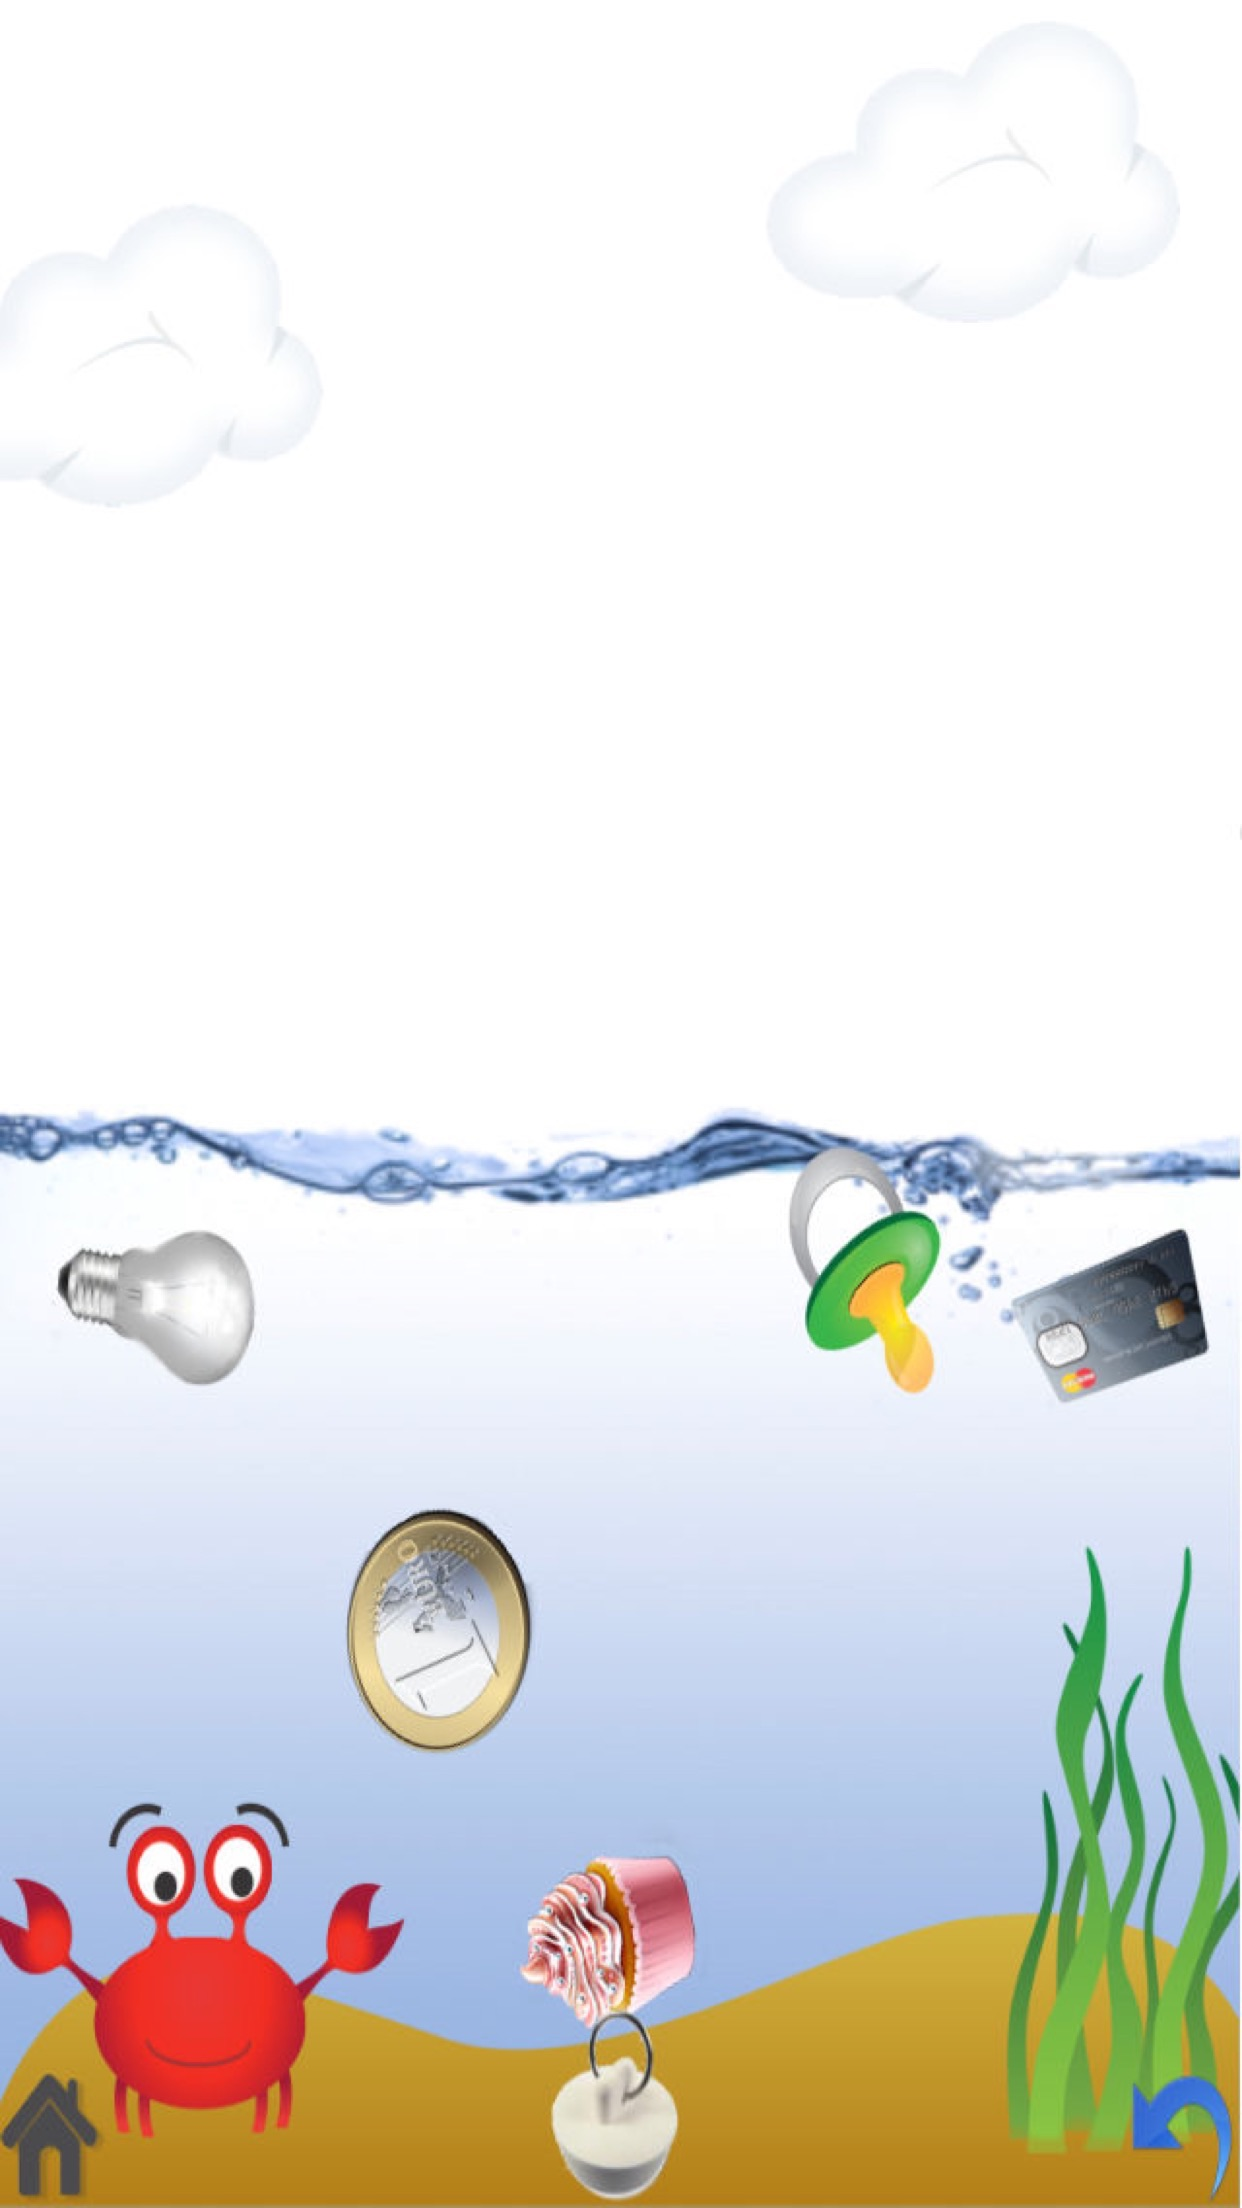 Sink or Float - Kids science experiment game Screenshot